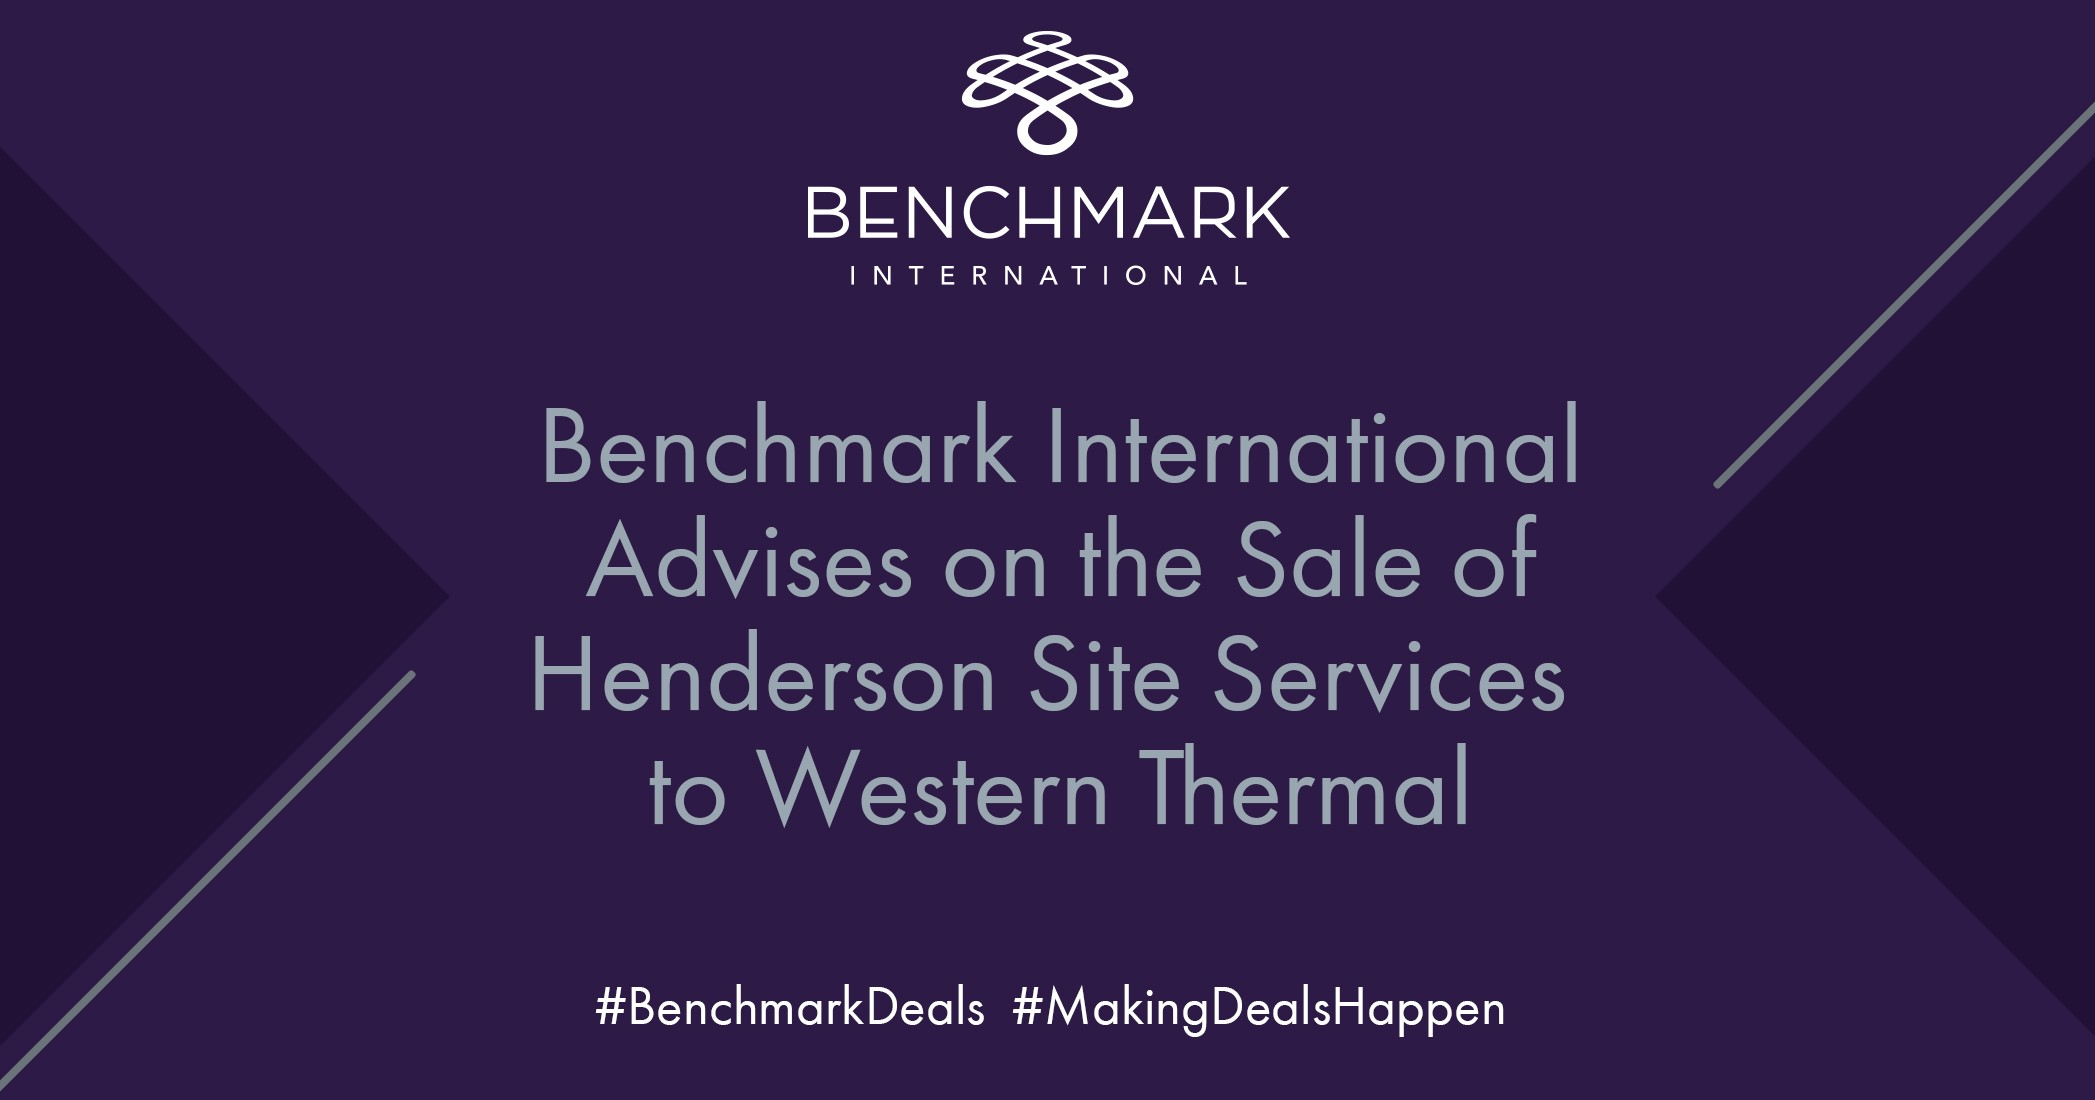 Benchmark International Advises on the Sale of Henderson Site Services Ltd to Western Thermal Ltd